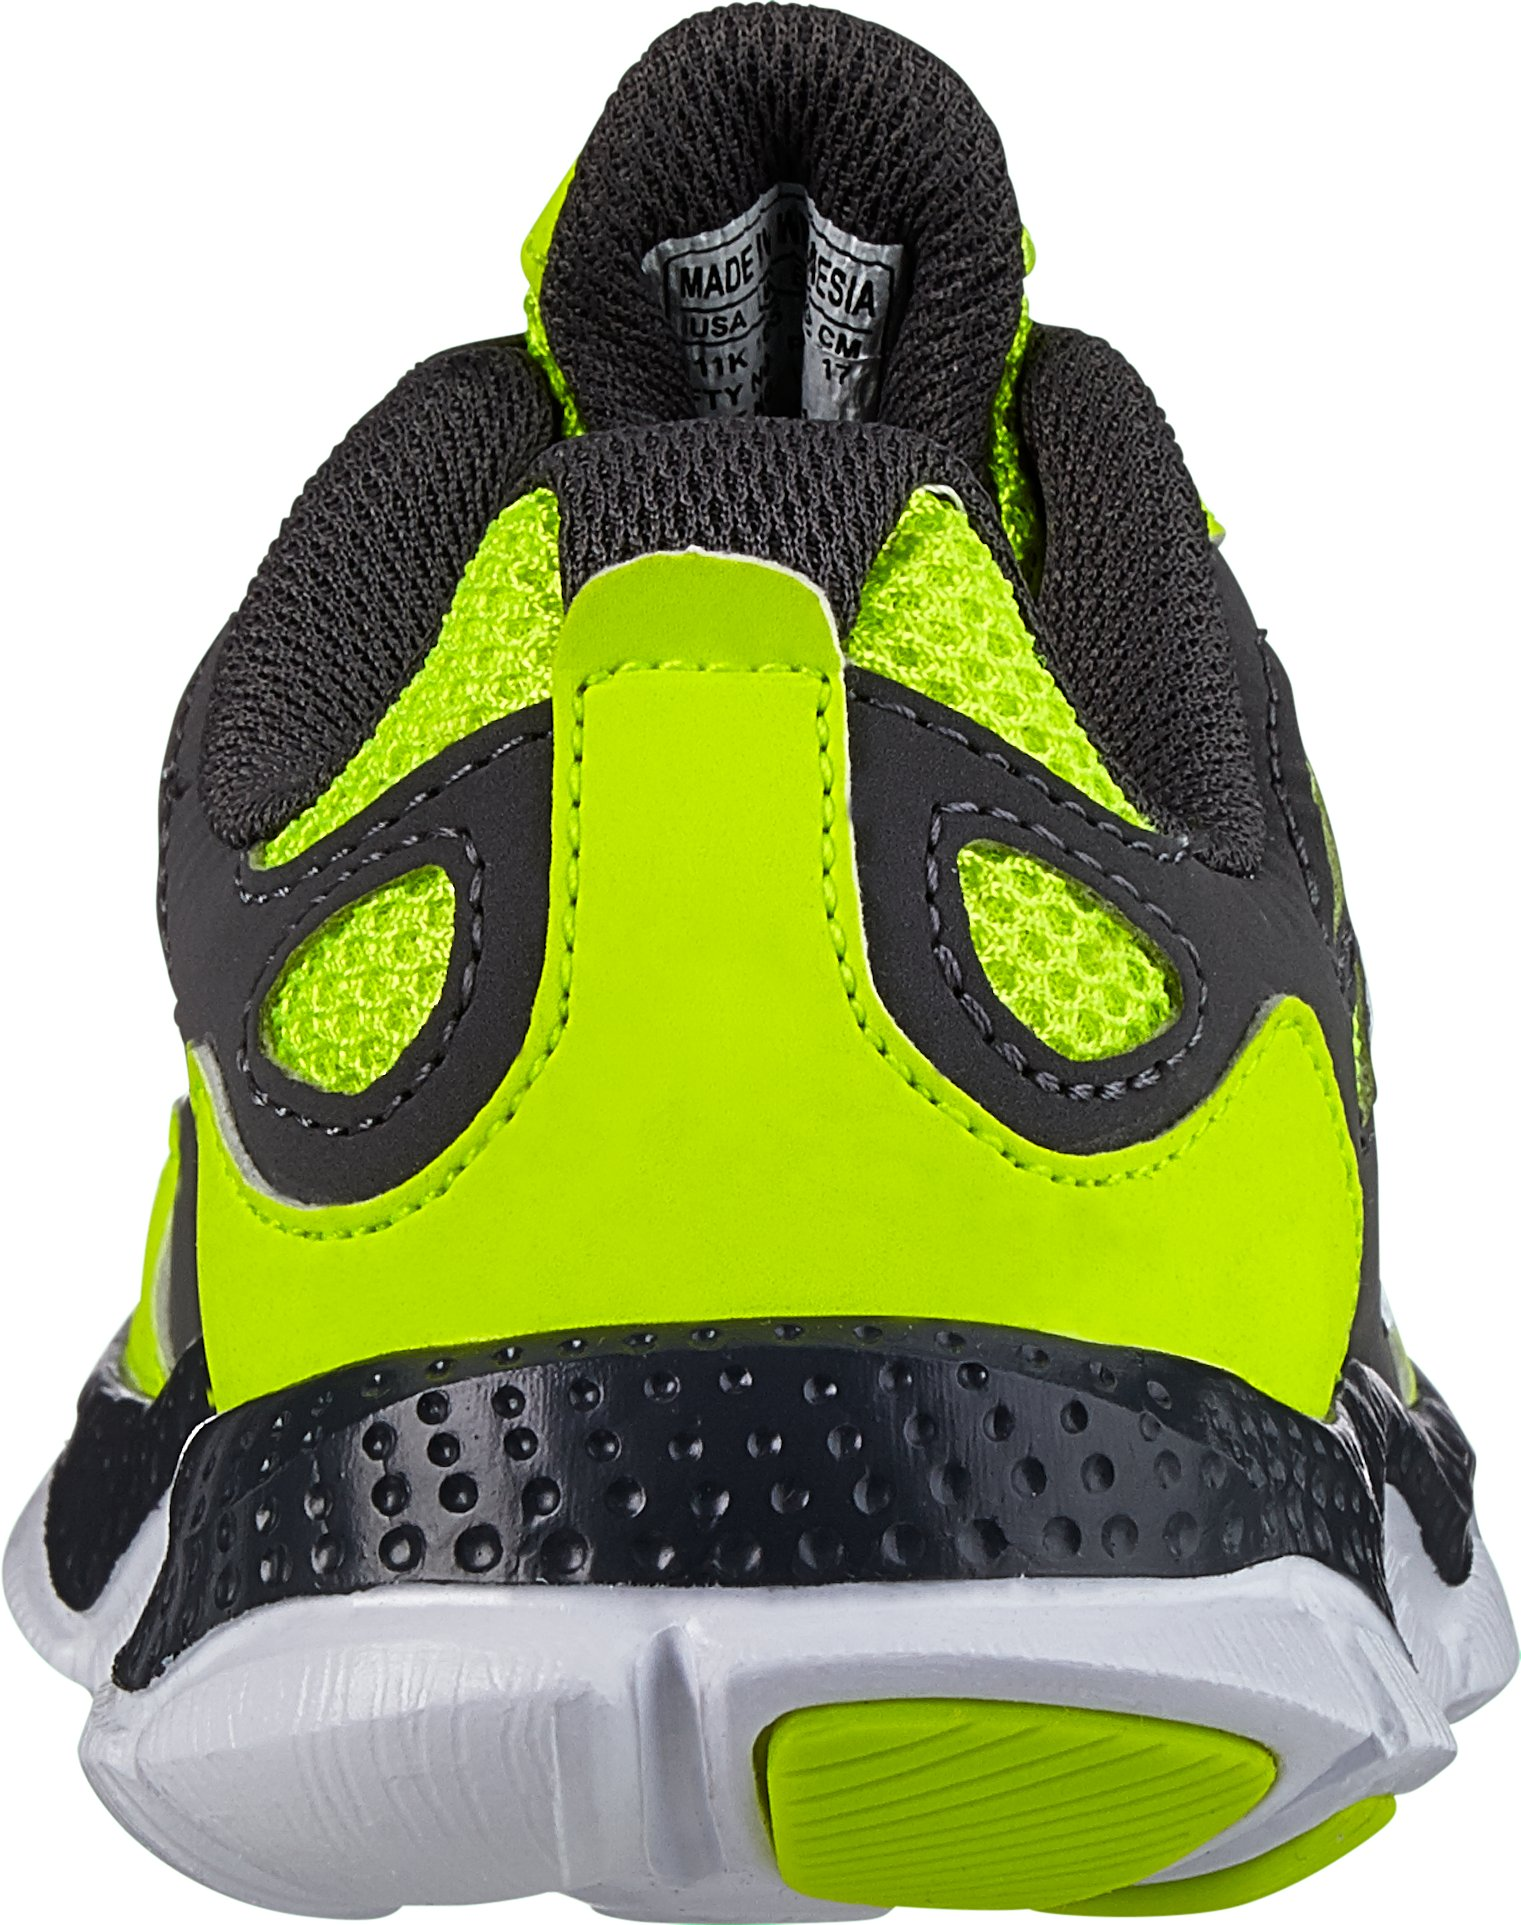 Boys' Pre-School UA Engage BL Shoes, High-Vis Yellow